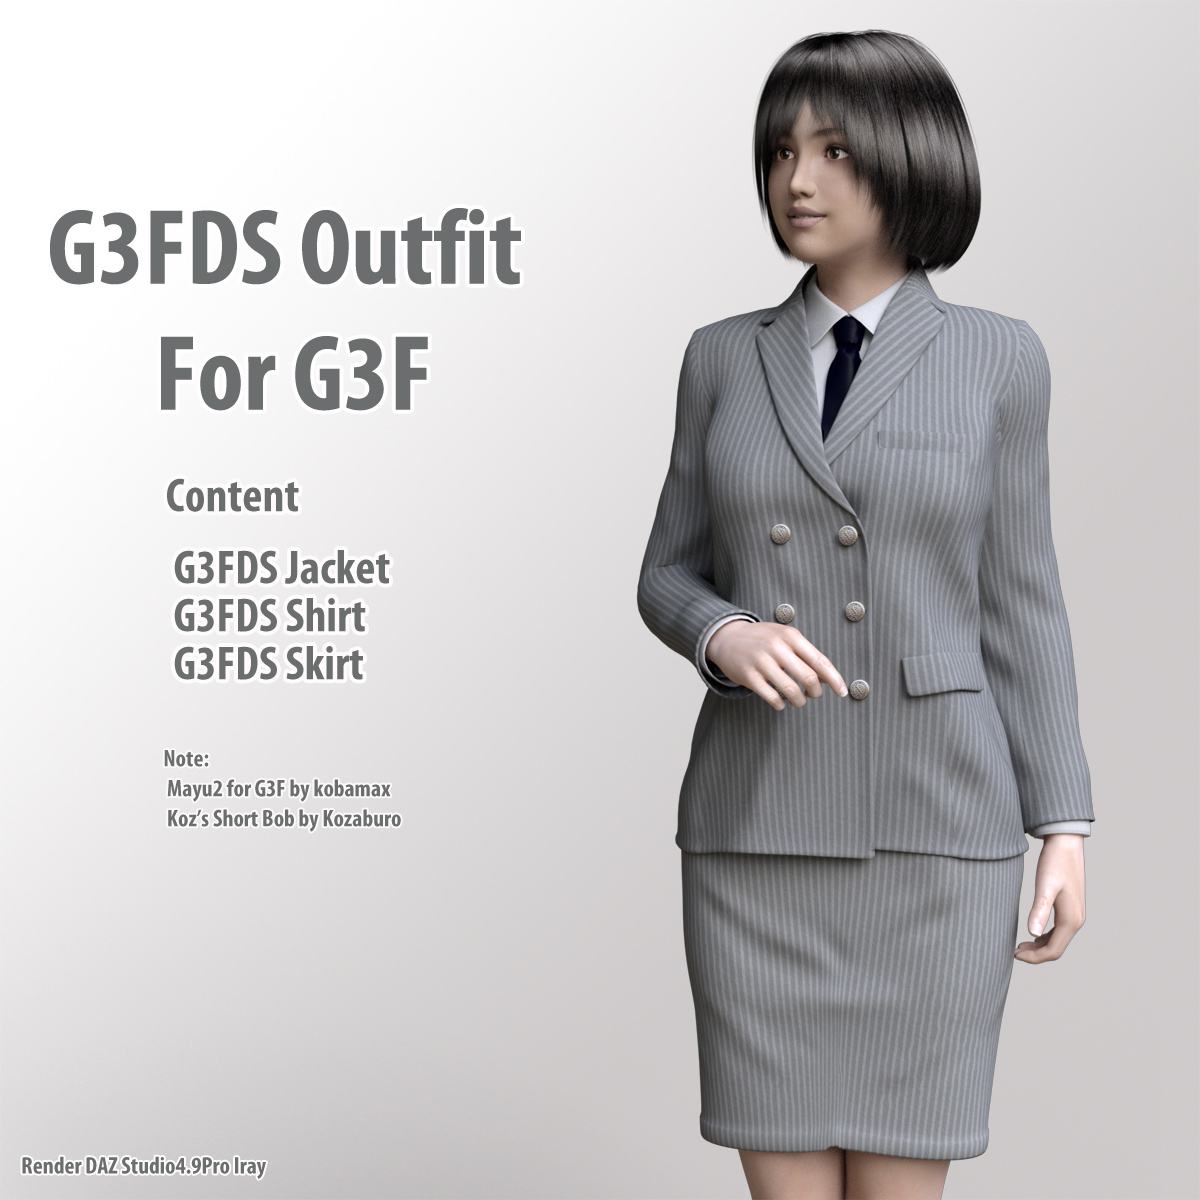 G3FDS Outfit for G3F